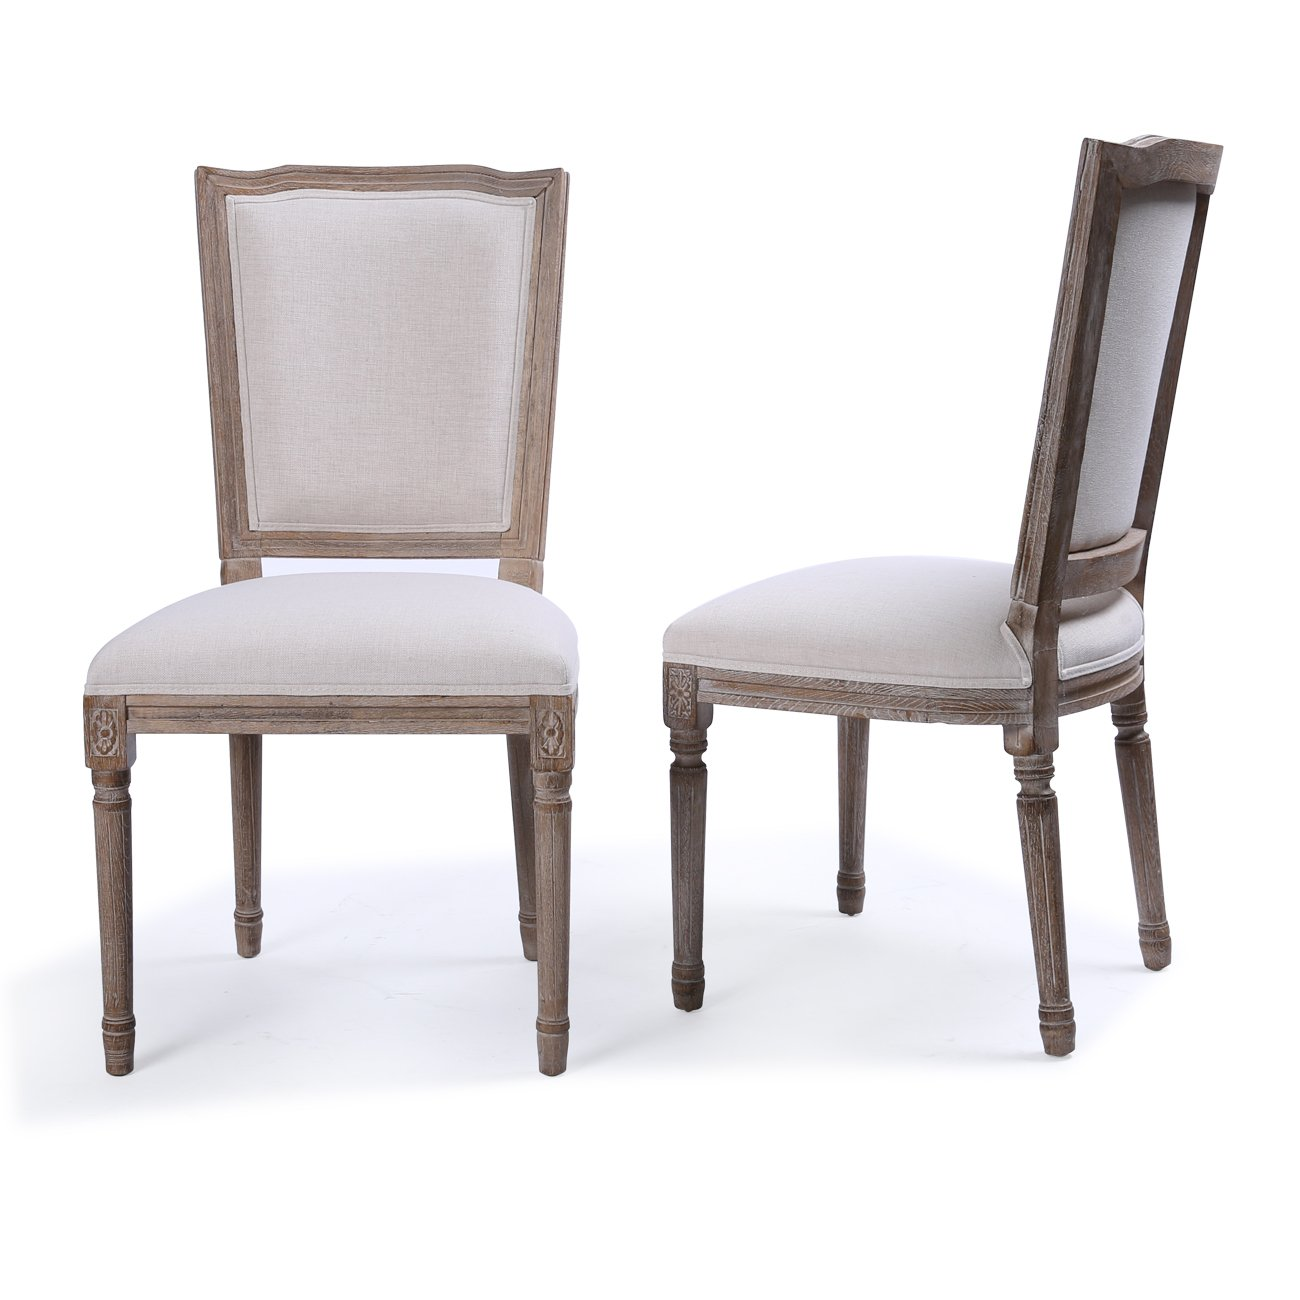 Amazon com belleze set of 2 modern classic elegant upholstered linen high back formal dining chairs w wood legs beige chairs